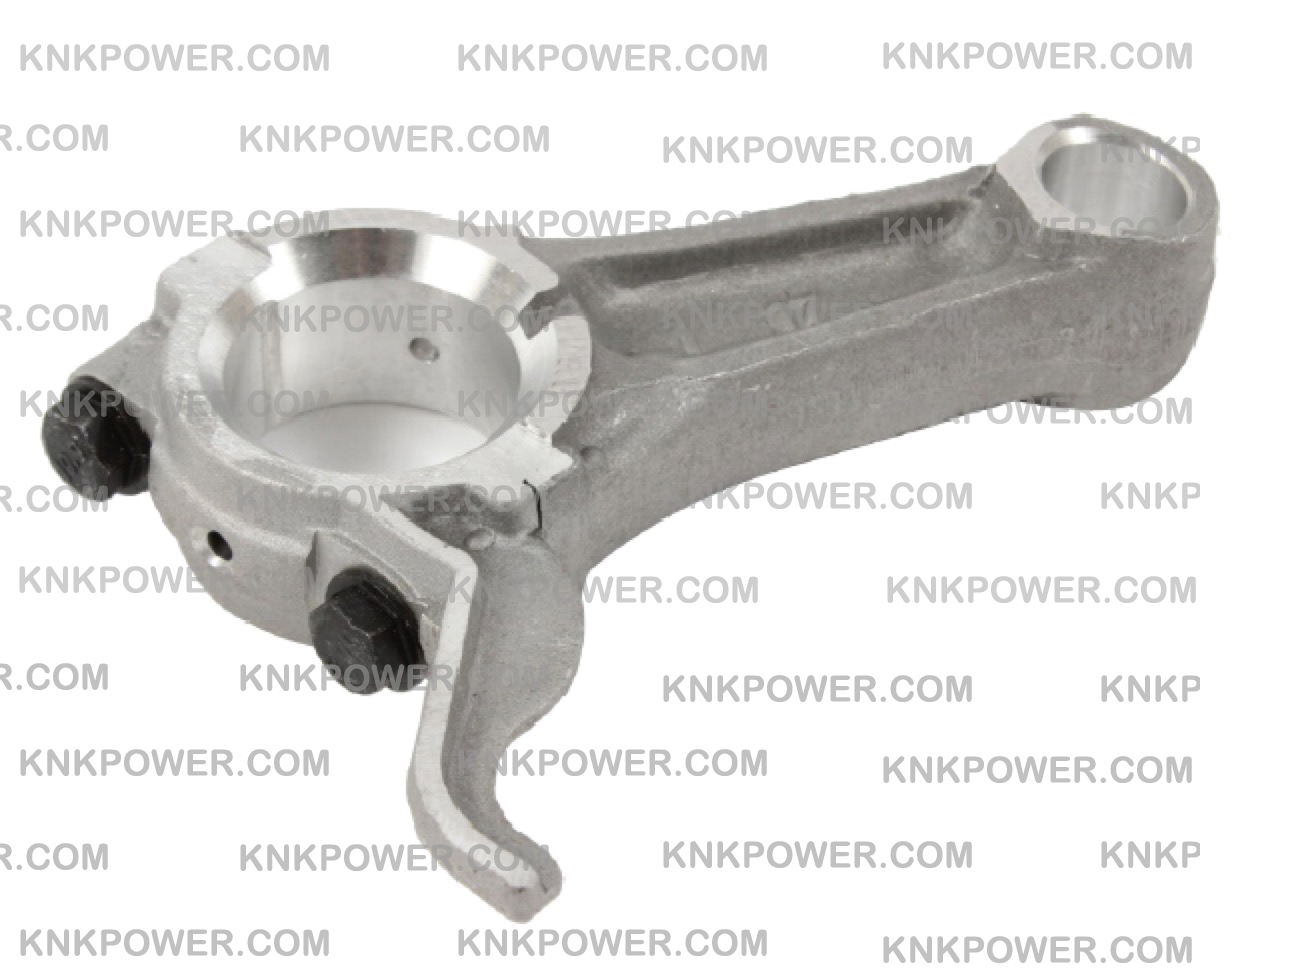 14.1-407 CONNECTING ROD 13200-Z1V-010 ROBIN EX17